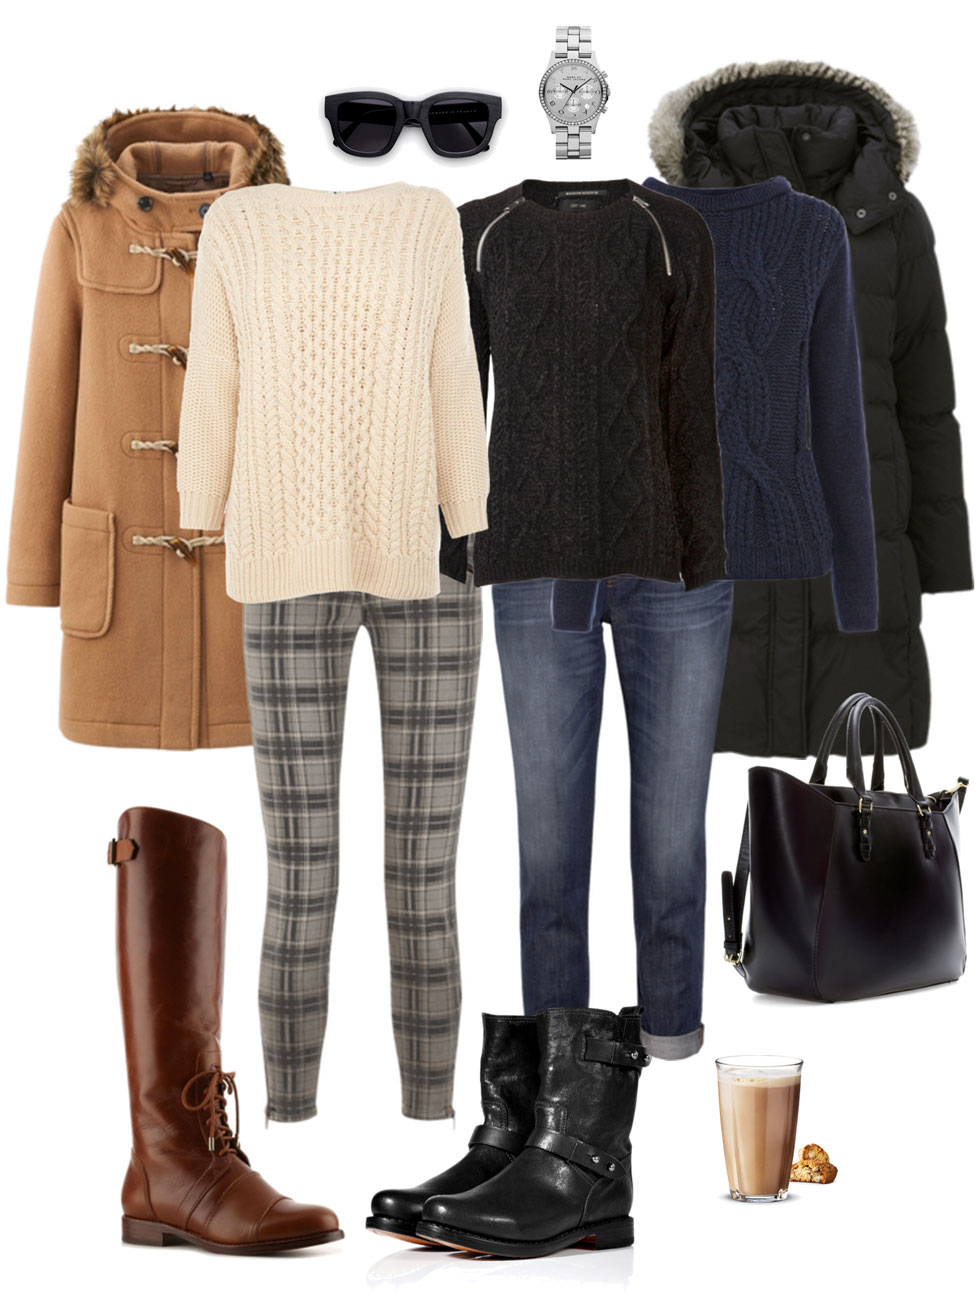 Skinnies with Boots and Chunky Sweaters